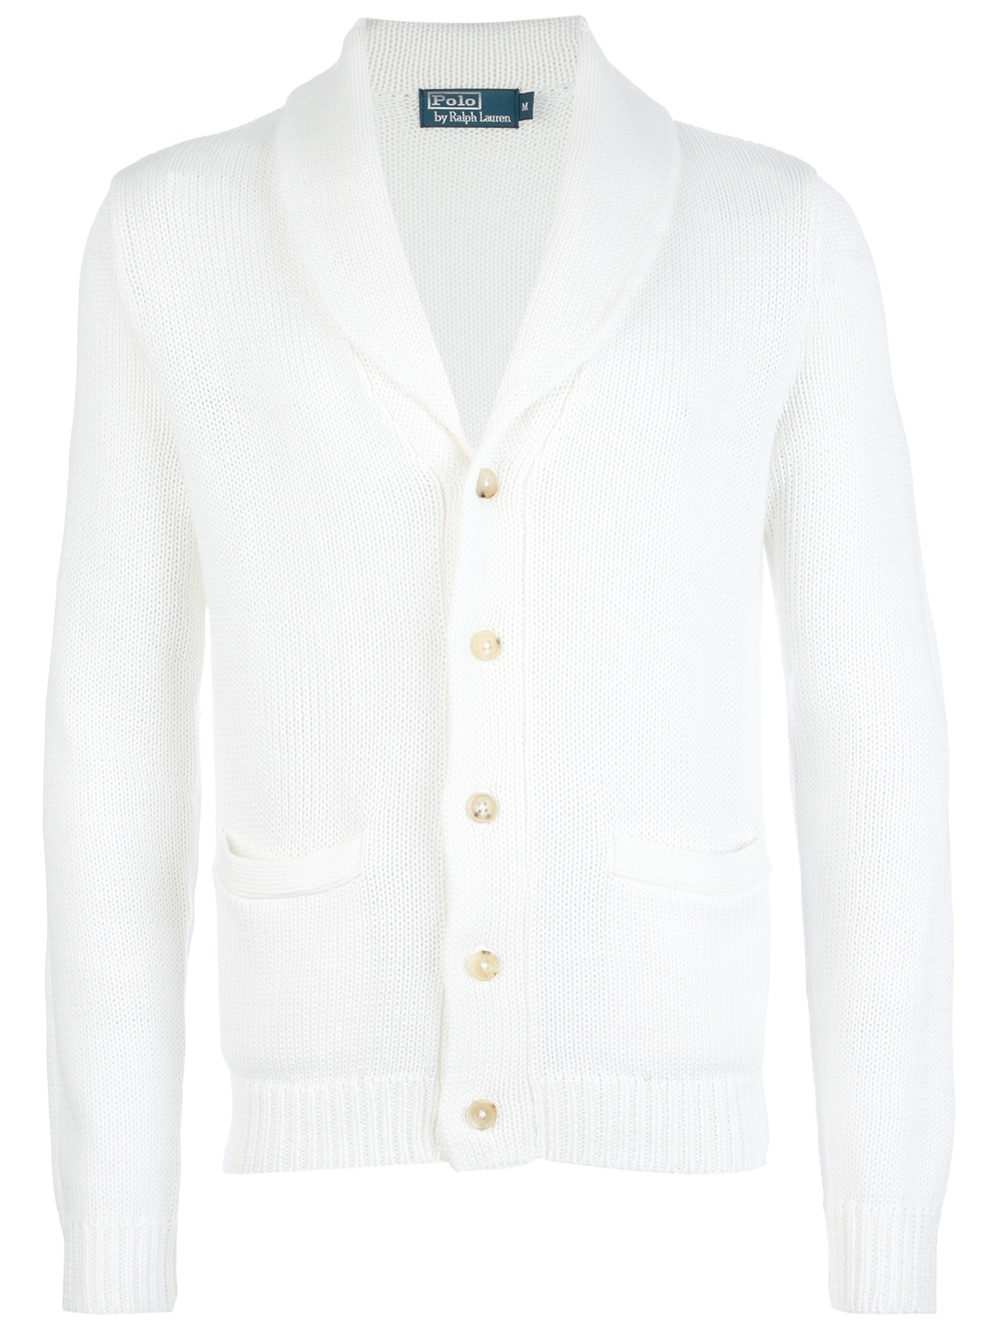 polo ralph lauren shawl collar cardigan in white for men. Black Bedroom Furniture Sets. Home Design Ideas